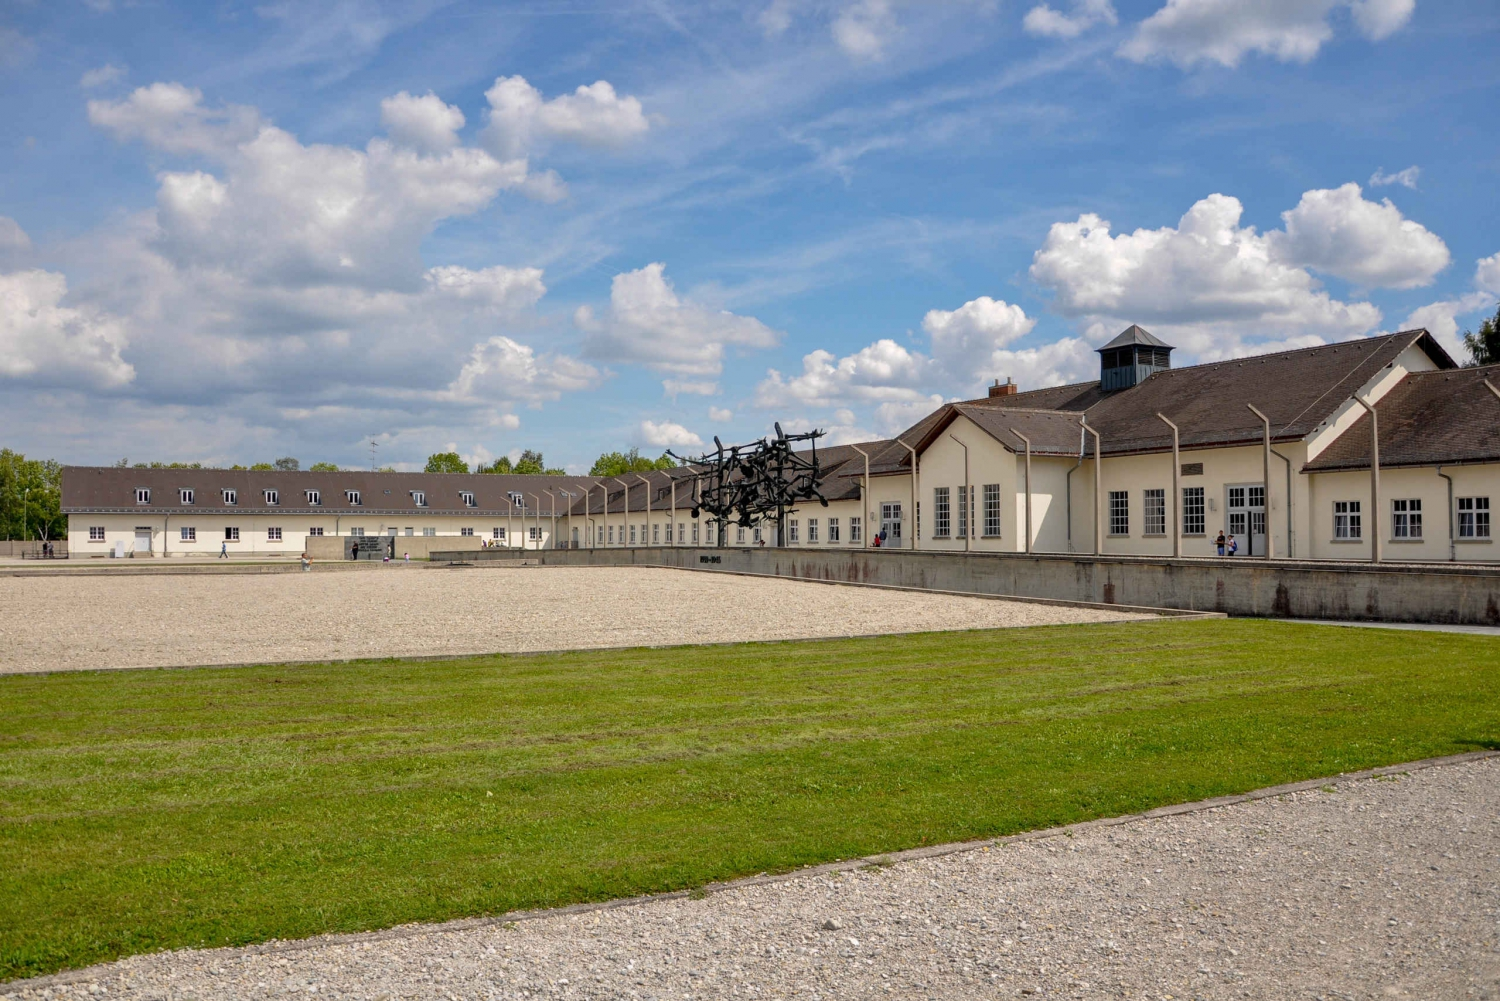 From Dachau Memorial Site Full-Day Tour in English